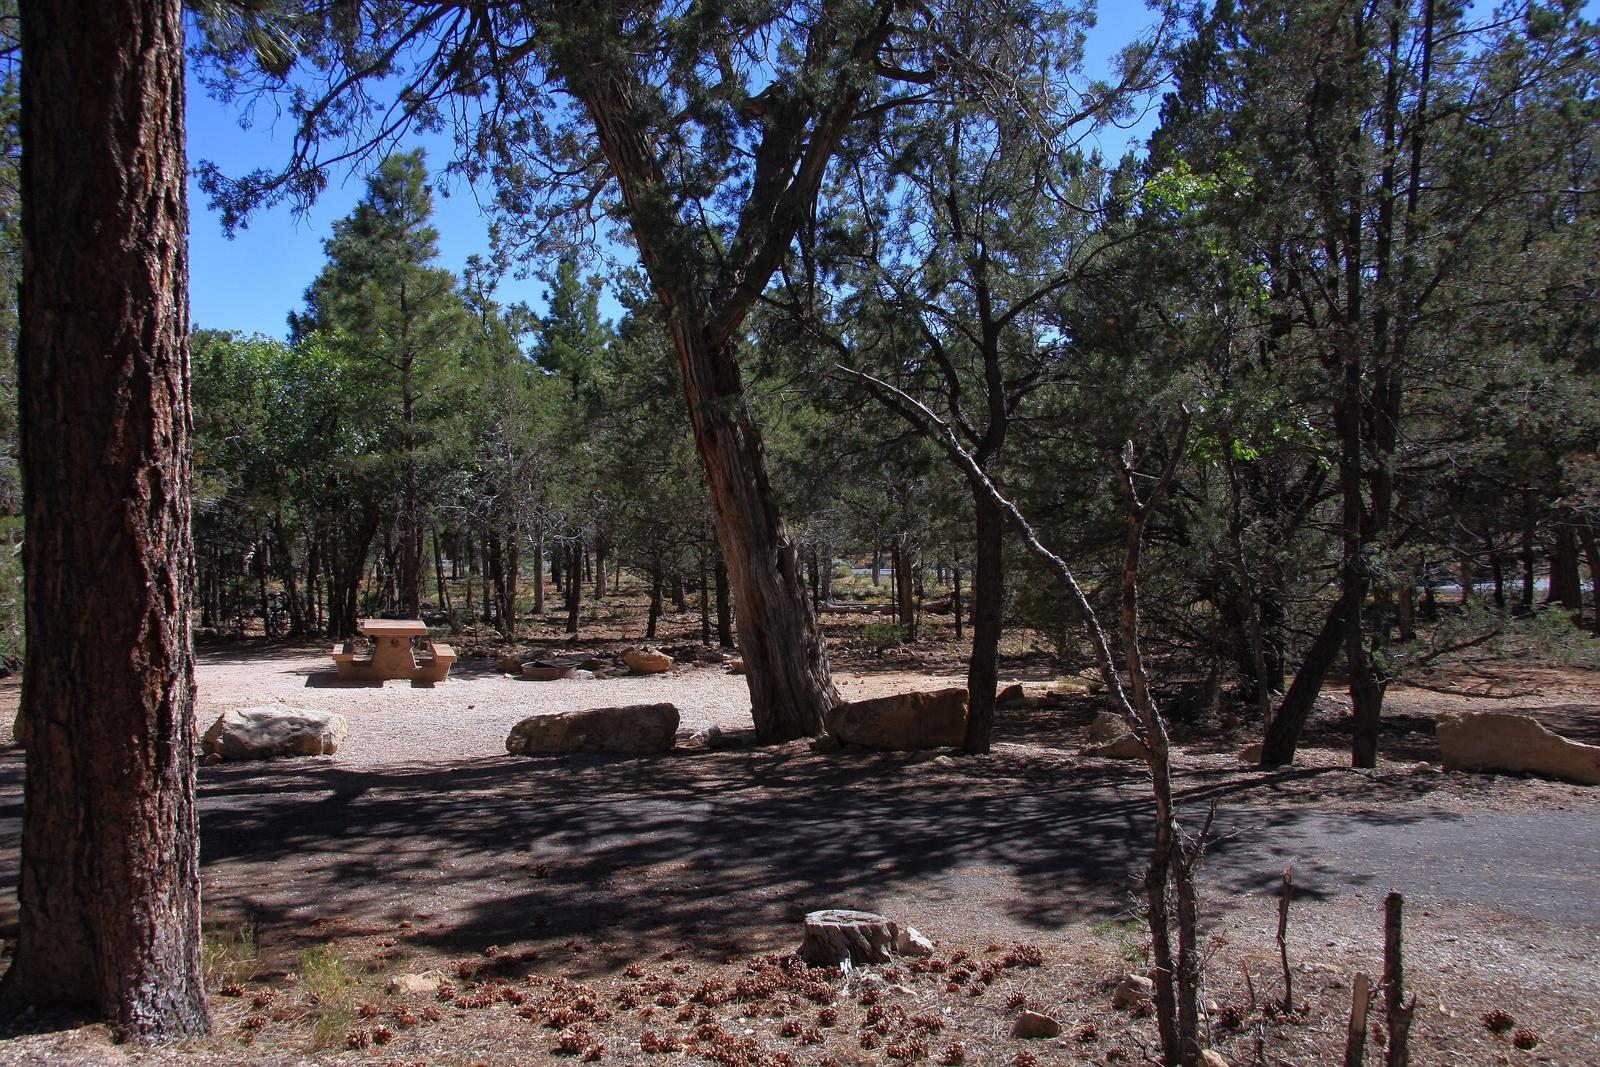 Picnic table, fire pit, and parking spot, Mather CampgroundPicnic table, fire pit, and parking spot for Fir Loop 79, Mather Campground